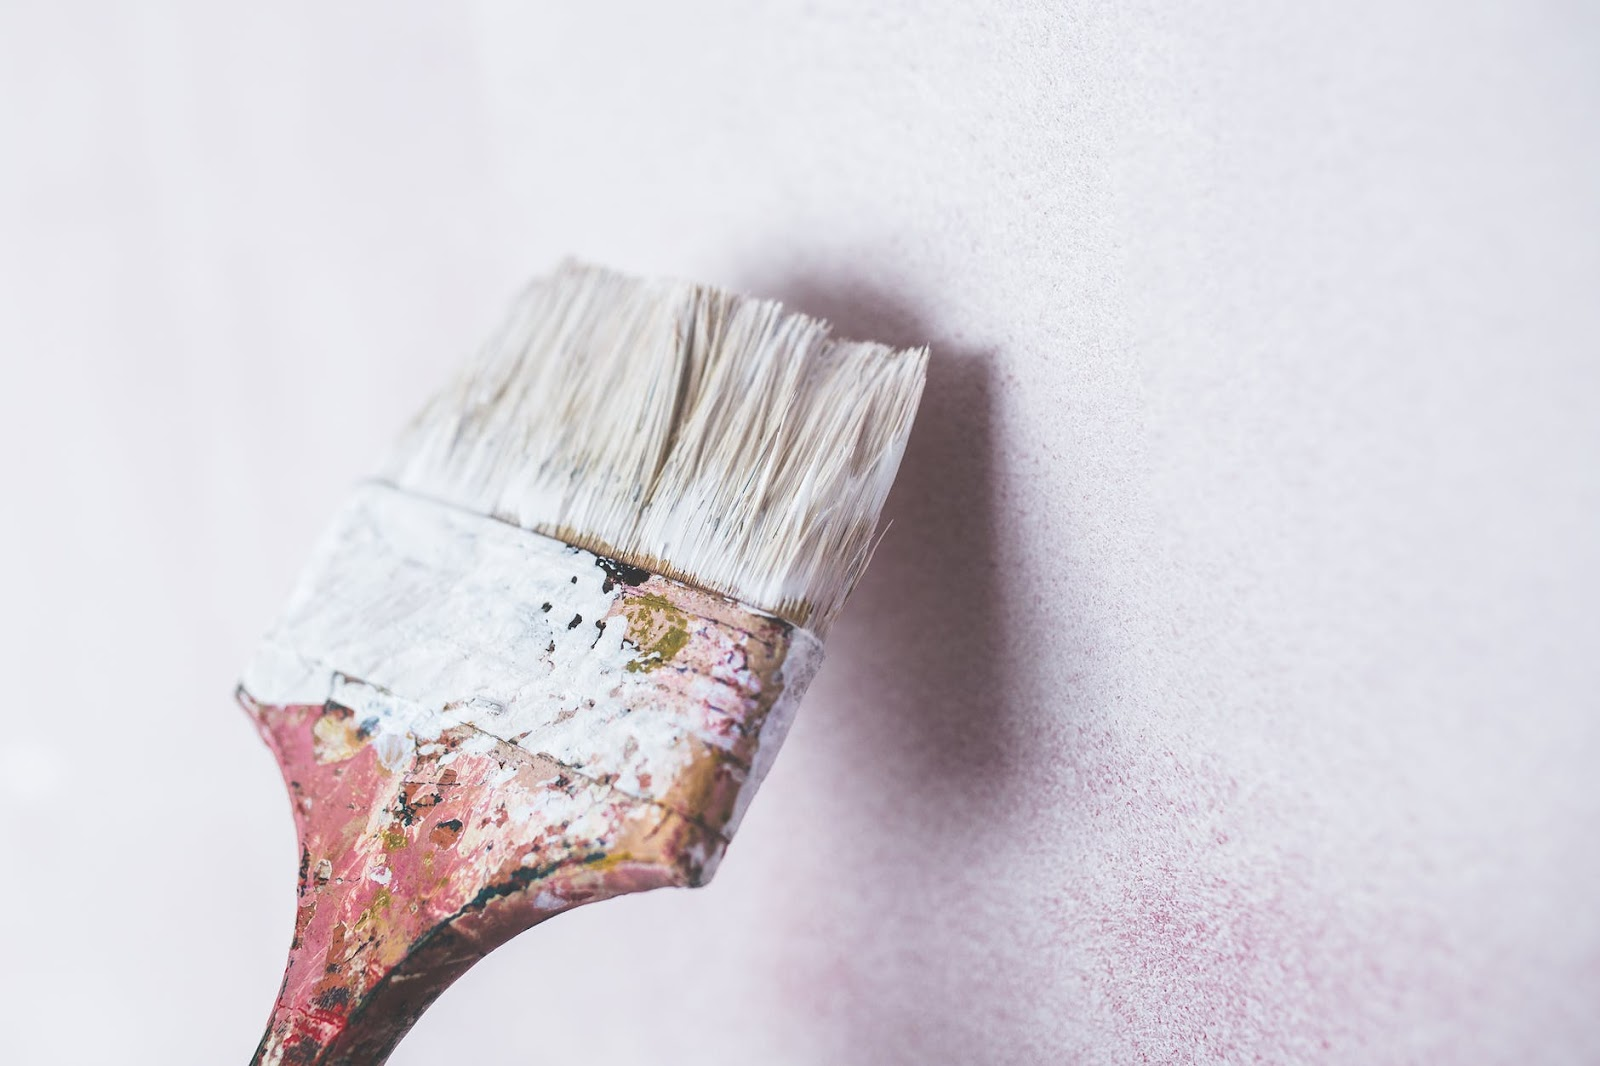 3 - PAINT COLOR HAS AN IMPACT ON MOOD.